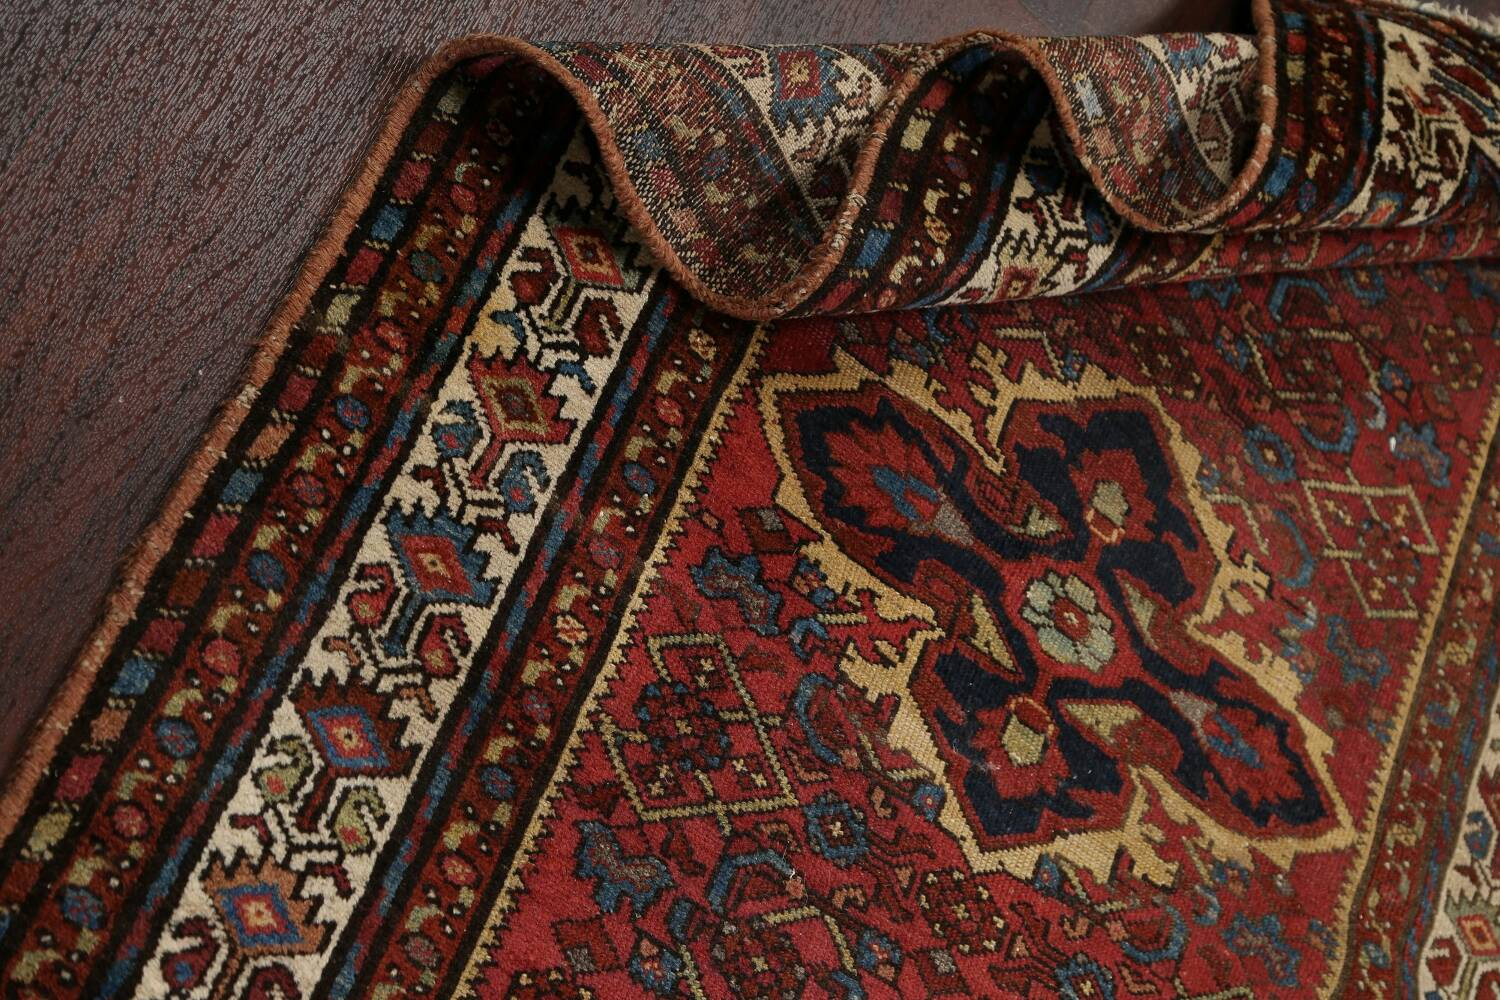 Pre-1900 Antique Vegetable Dye Malayer Persian Area Rug 4x7 image 17